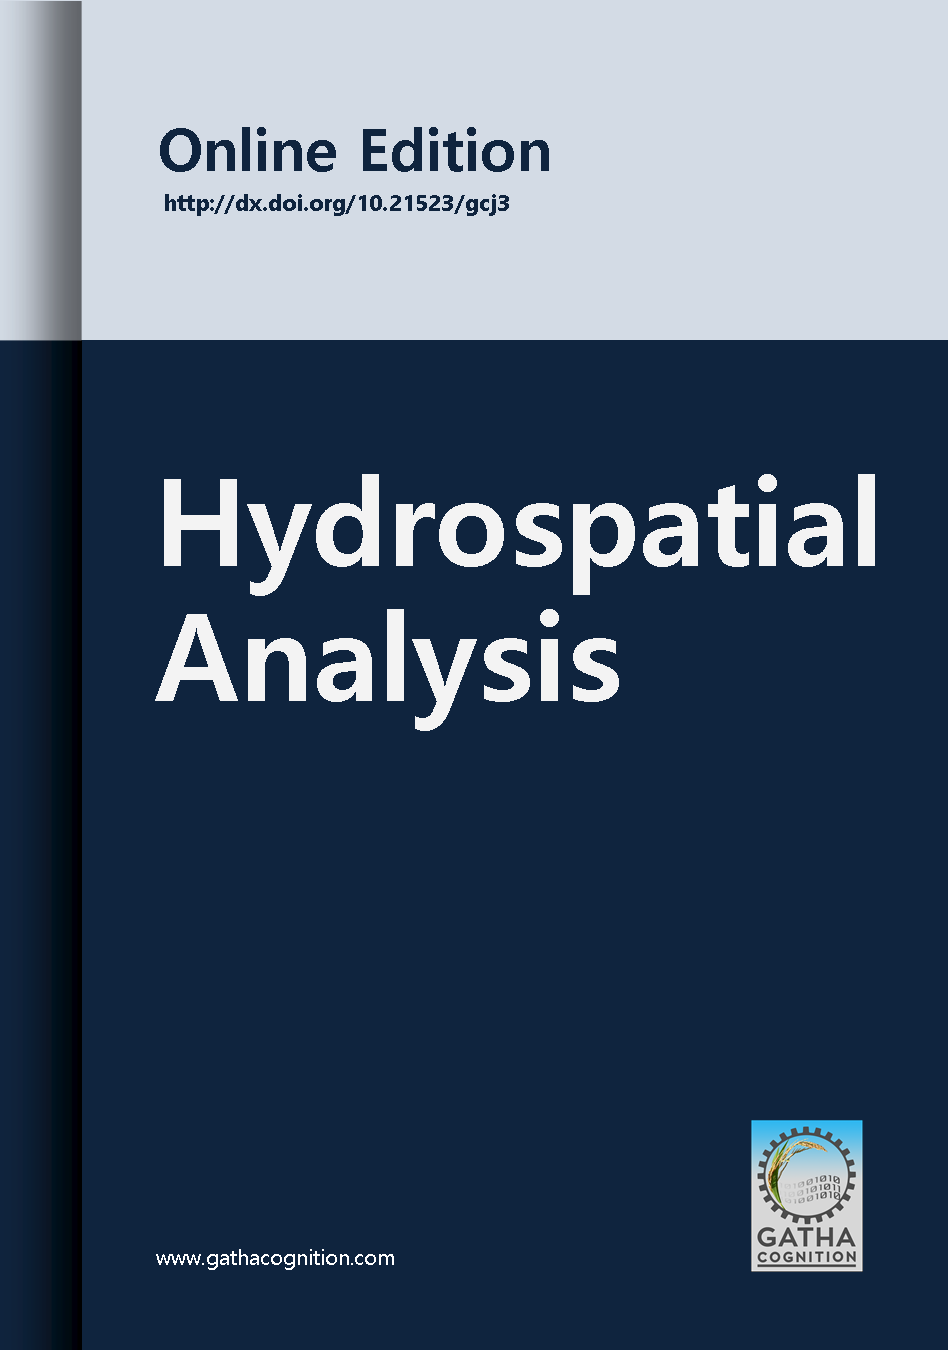 Hydrospatial Analysis